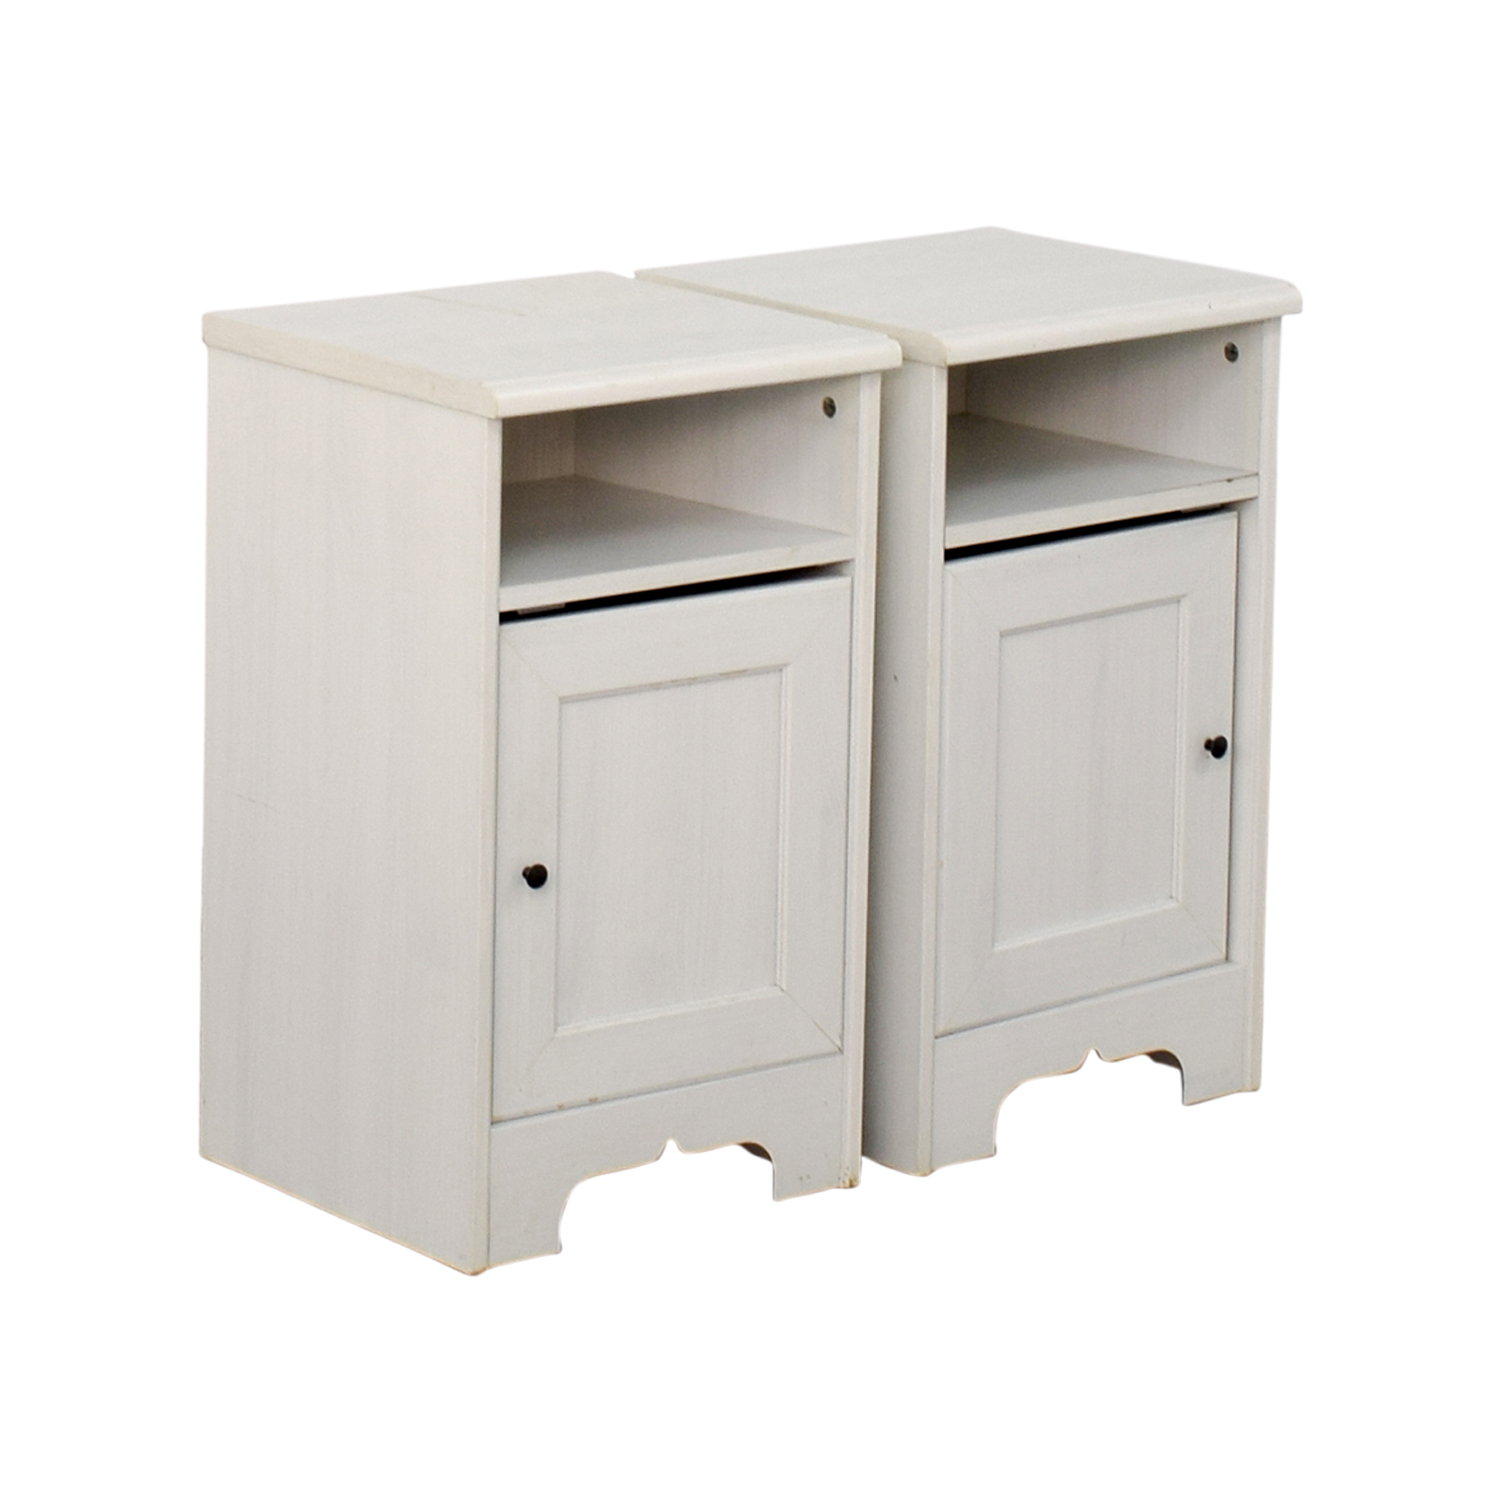 79 off ikea ikea hemnes white side cabinets storage. Black Bedroom Furniture Sets. Home Design Ideas